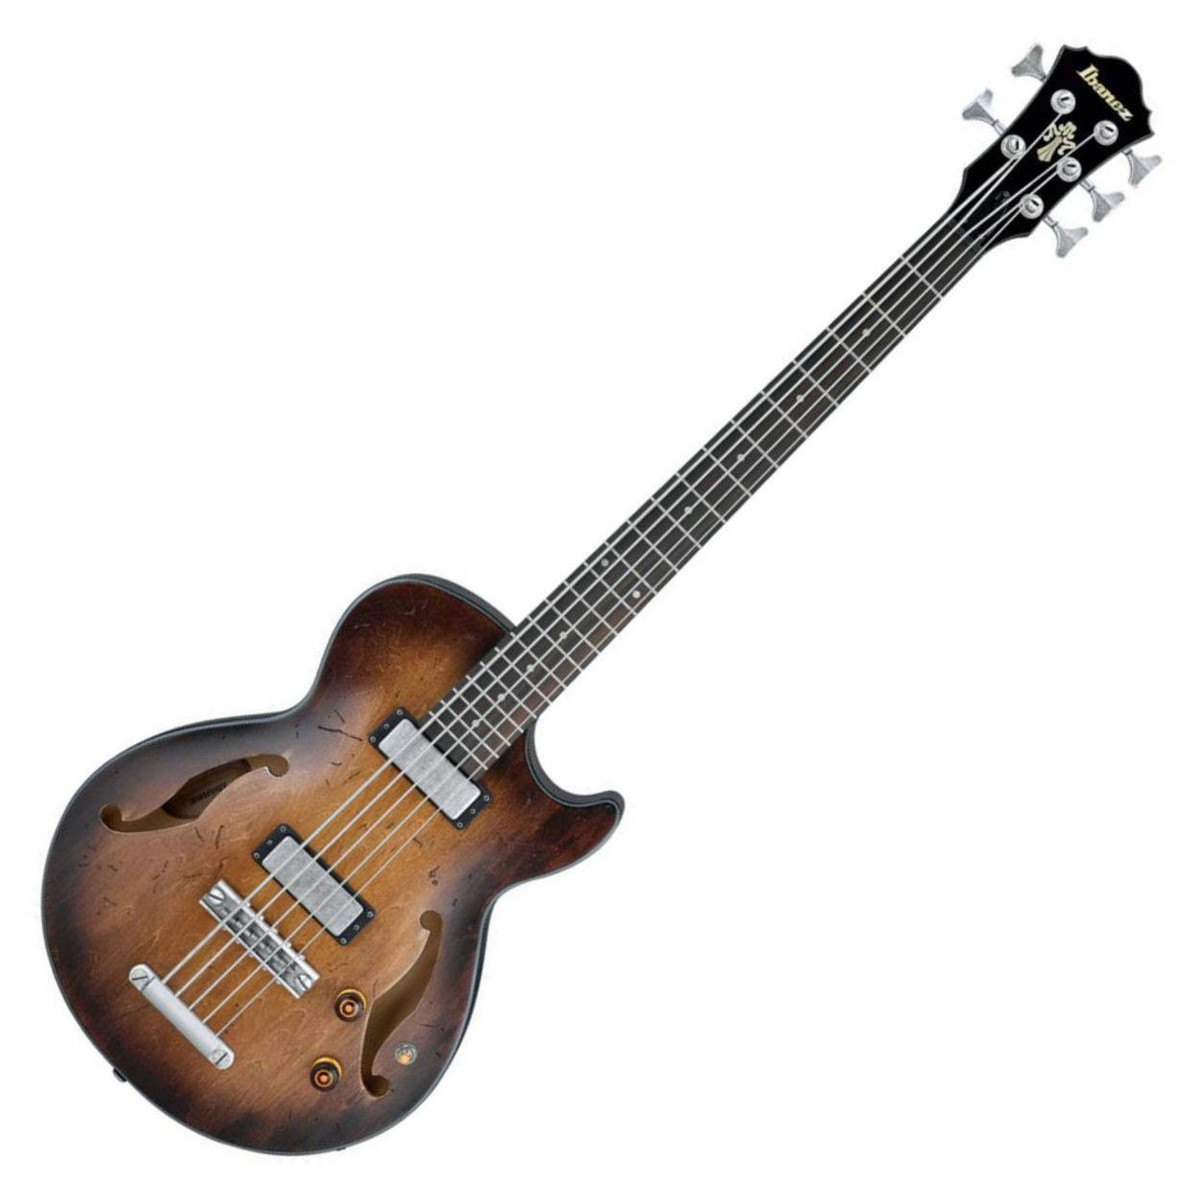 Cheap Ibanez AGBV205A Artcore Vintage 5-String Bass Guitar, Tobacco Burst